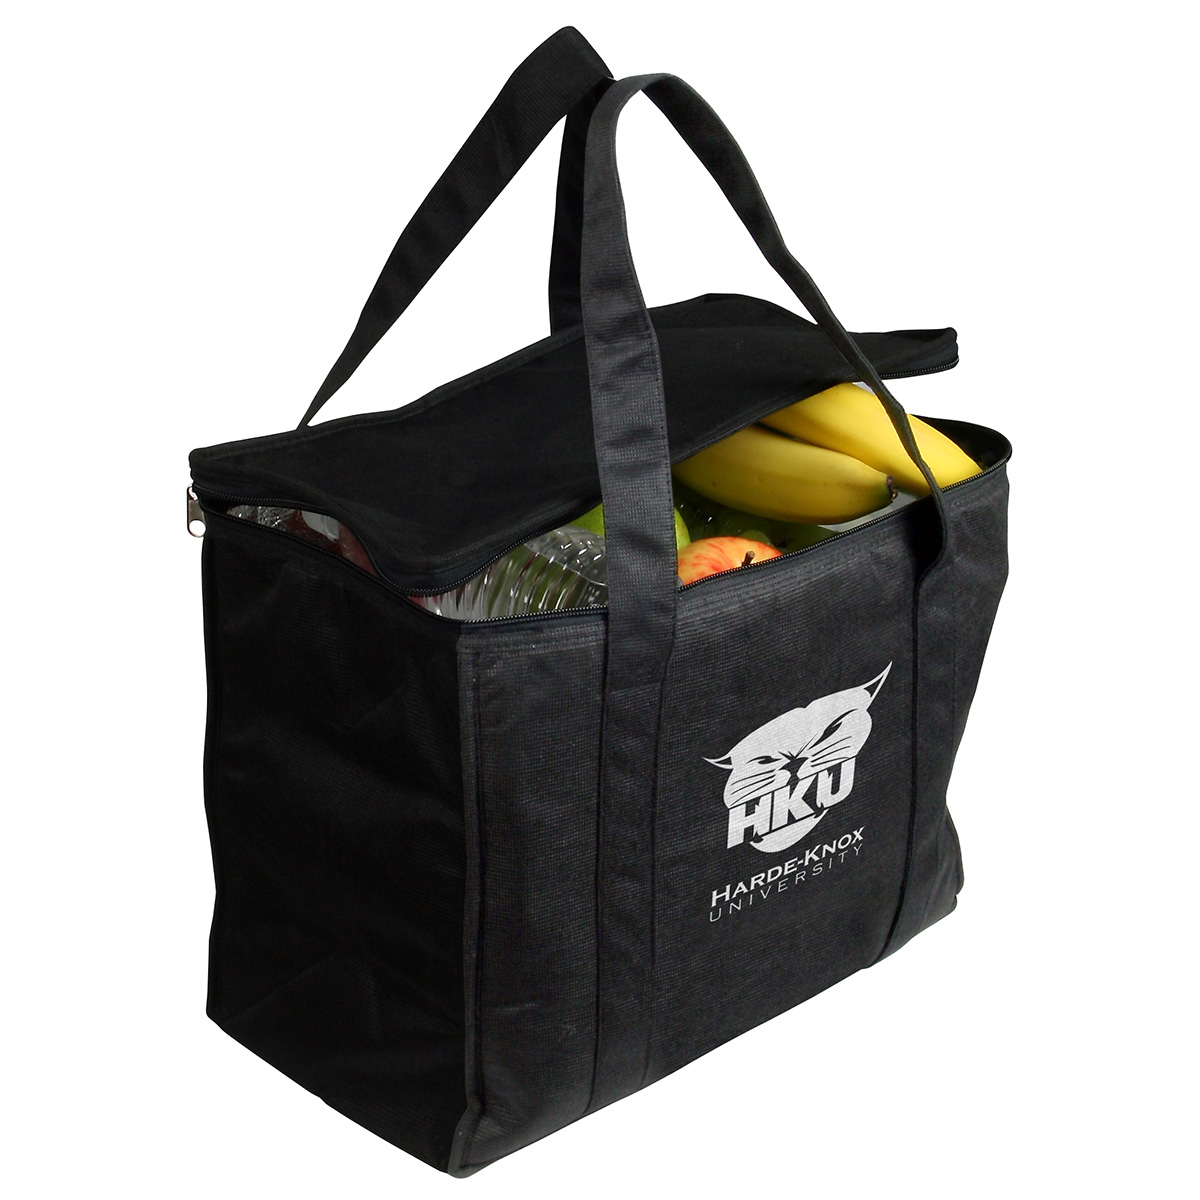 Picnic Recycled P.E.T. Cooler Bag, WBA-PR10, 1 Colour Imprint